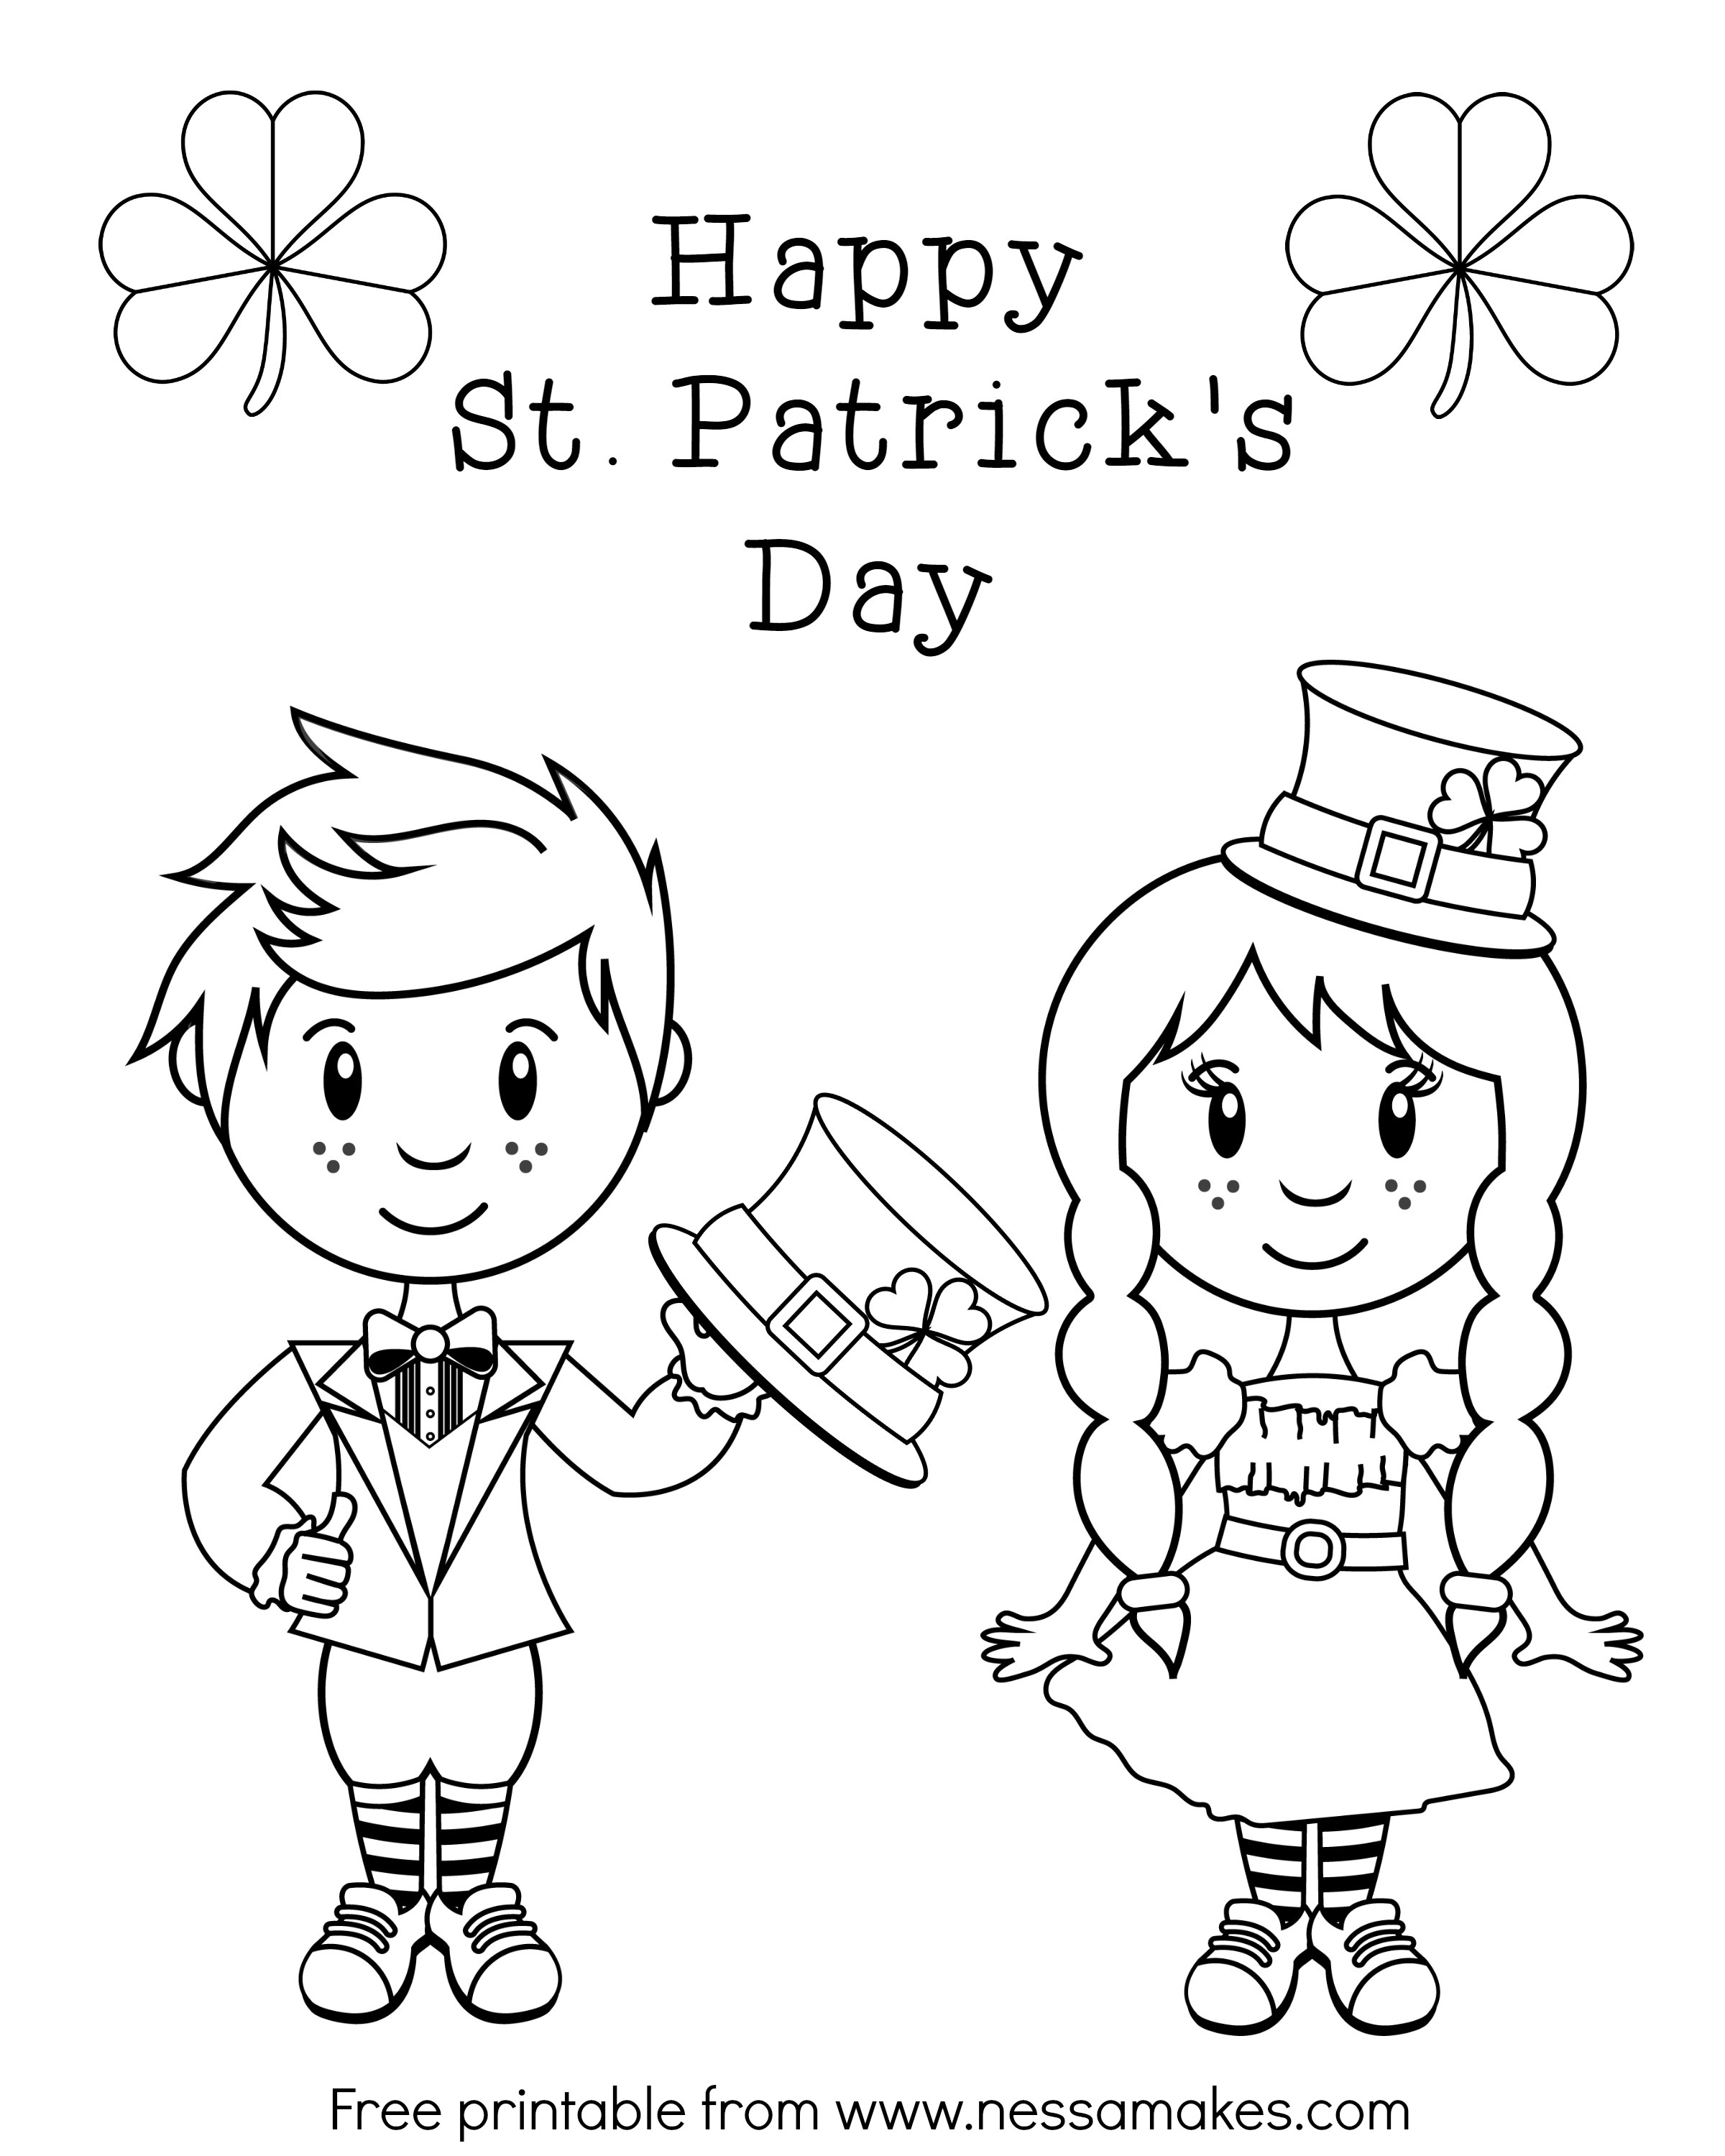 irish coloring pages irish coloring pages for adults at getcoloringscom free irish pages coloring